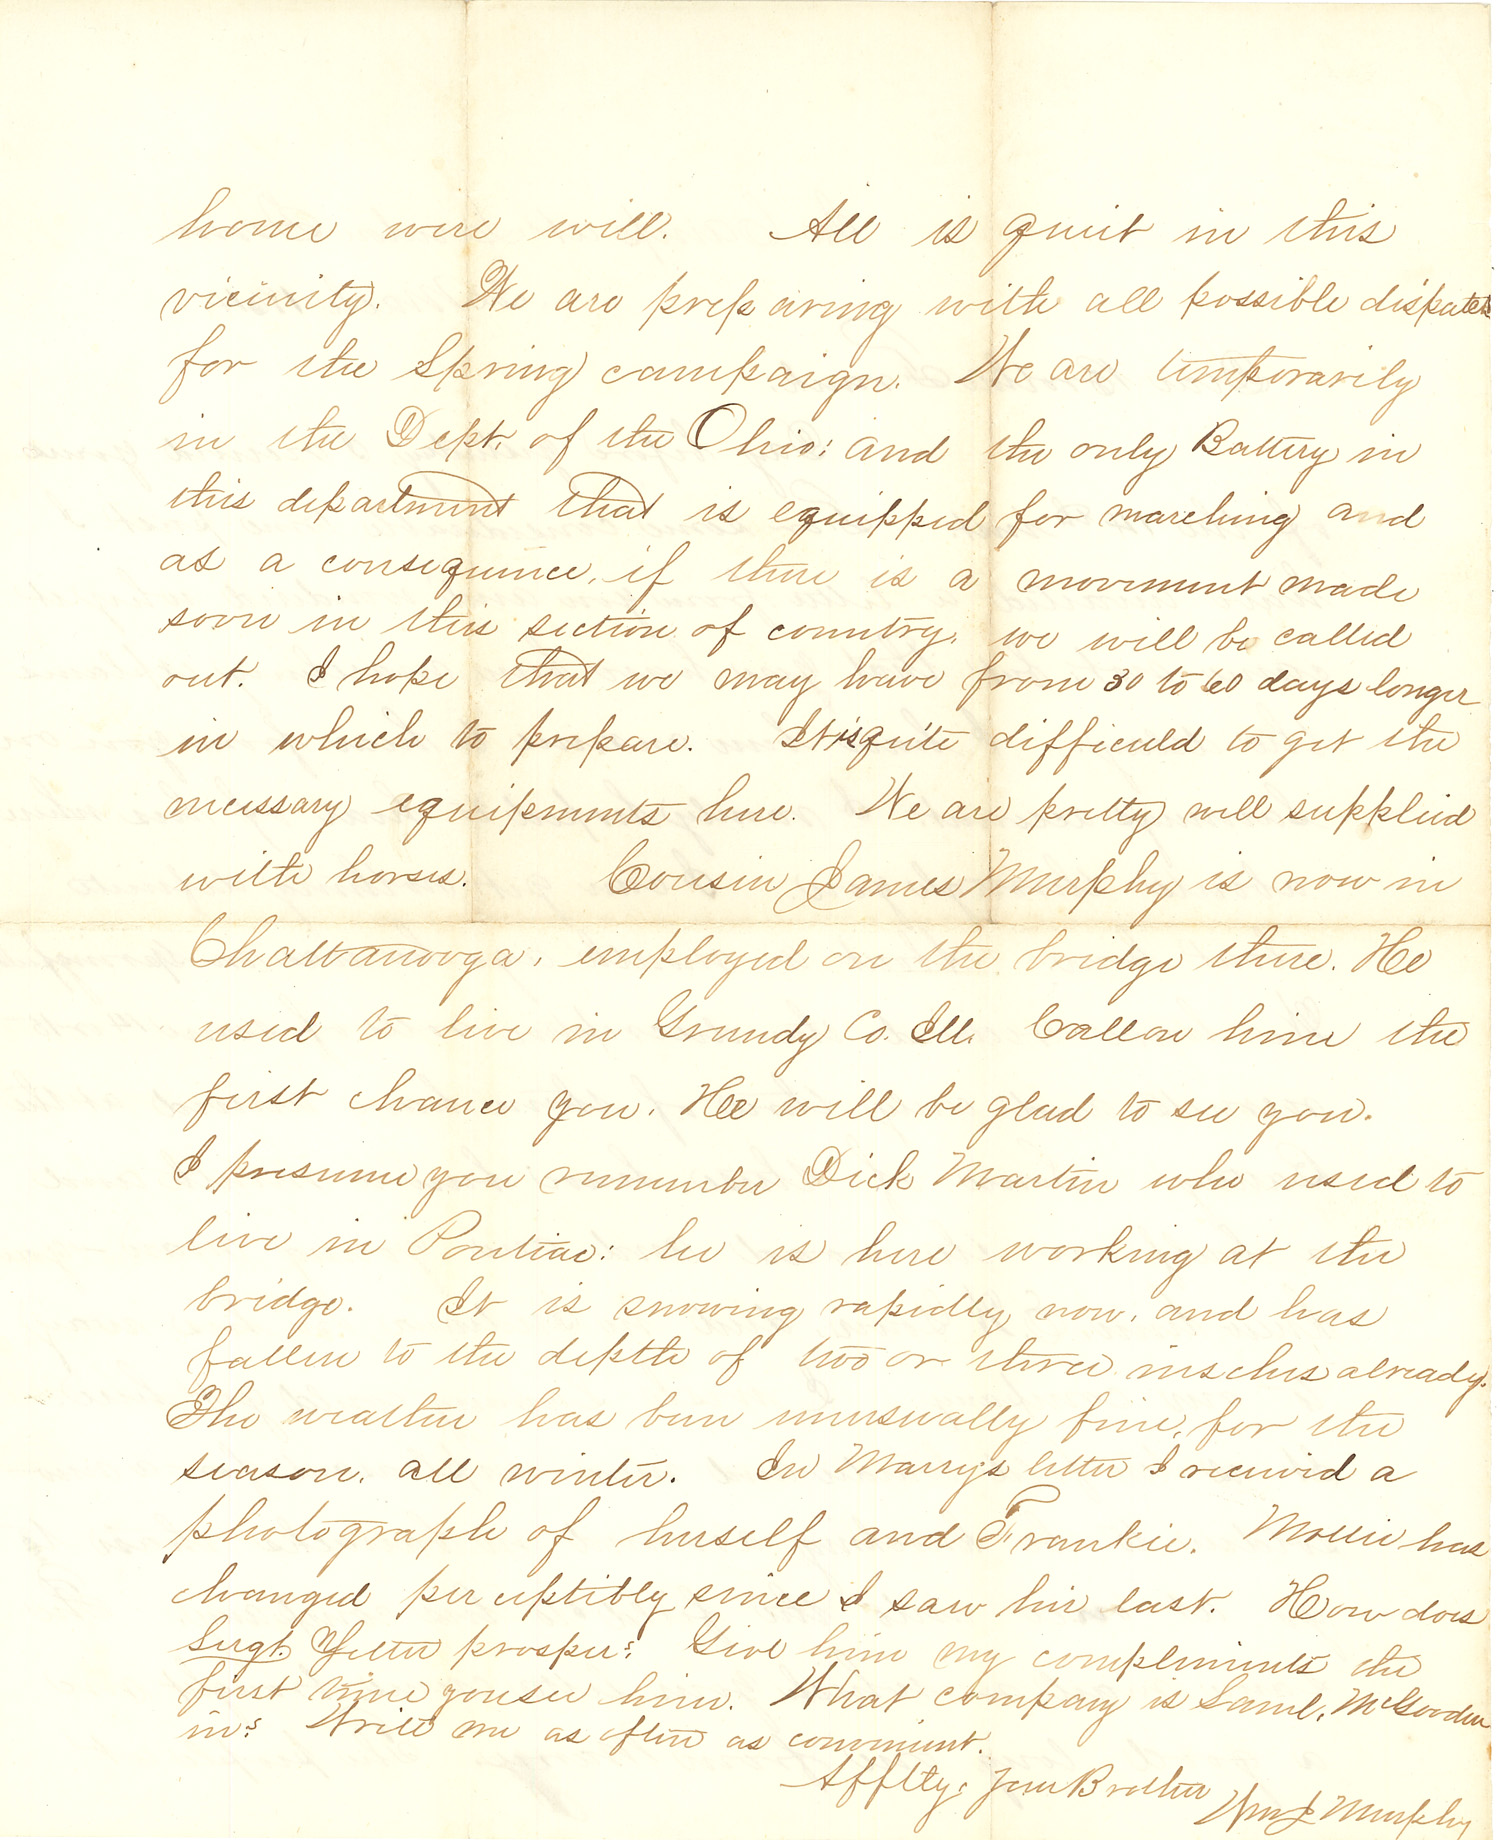 Joseph Culver Letter, March 22, 1864, Letter 2, Page 2